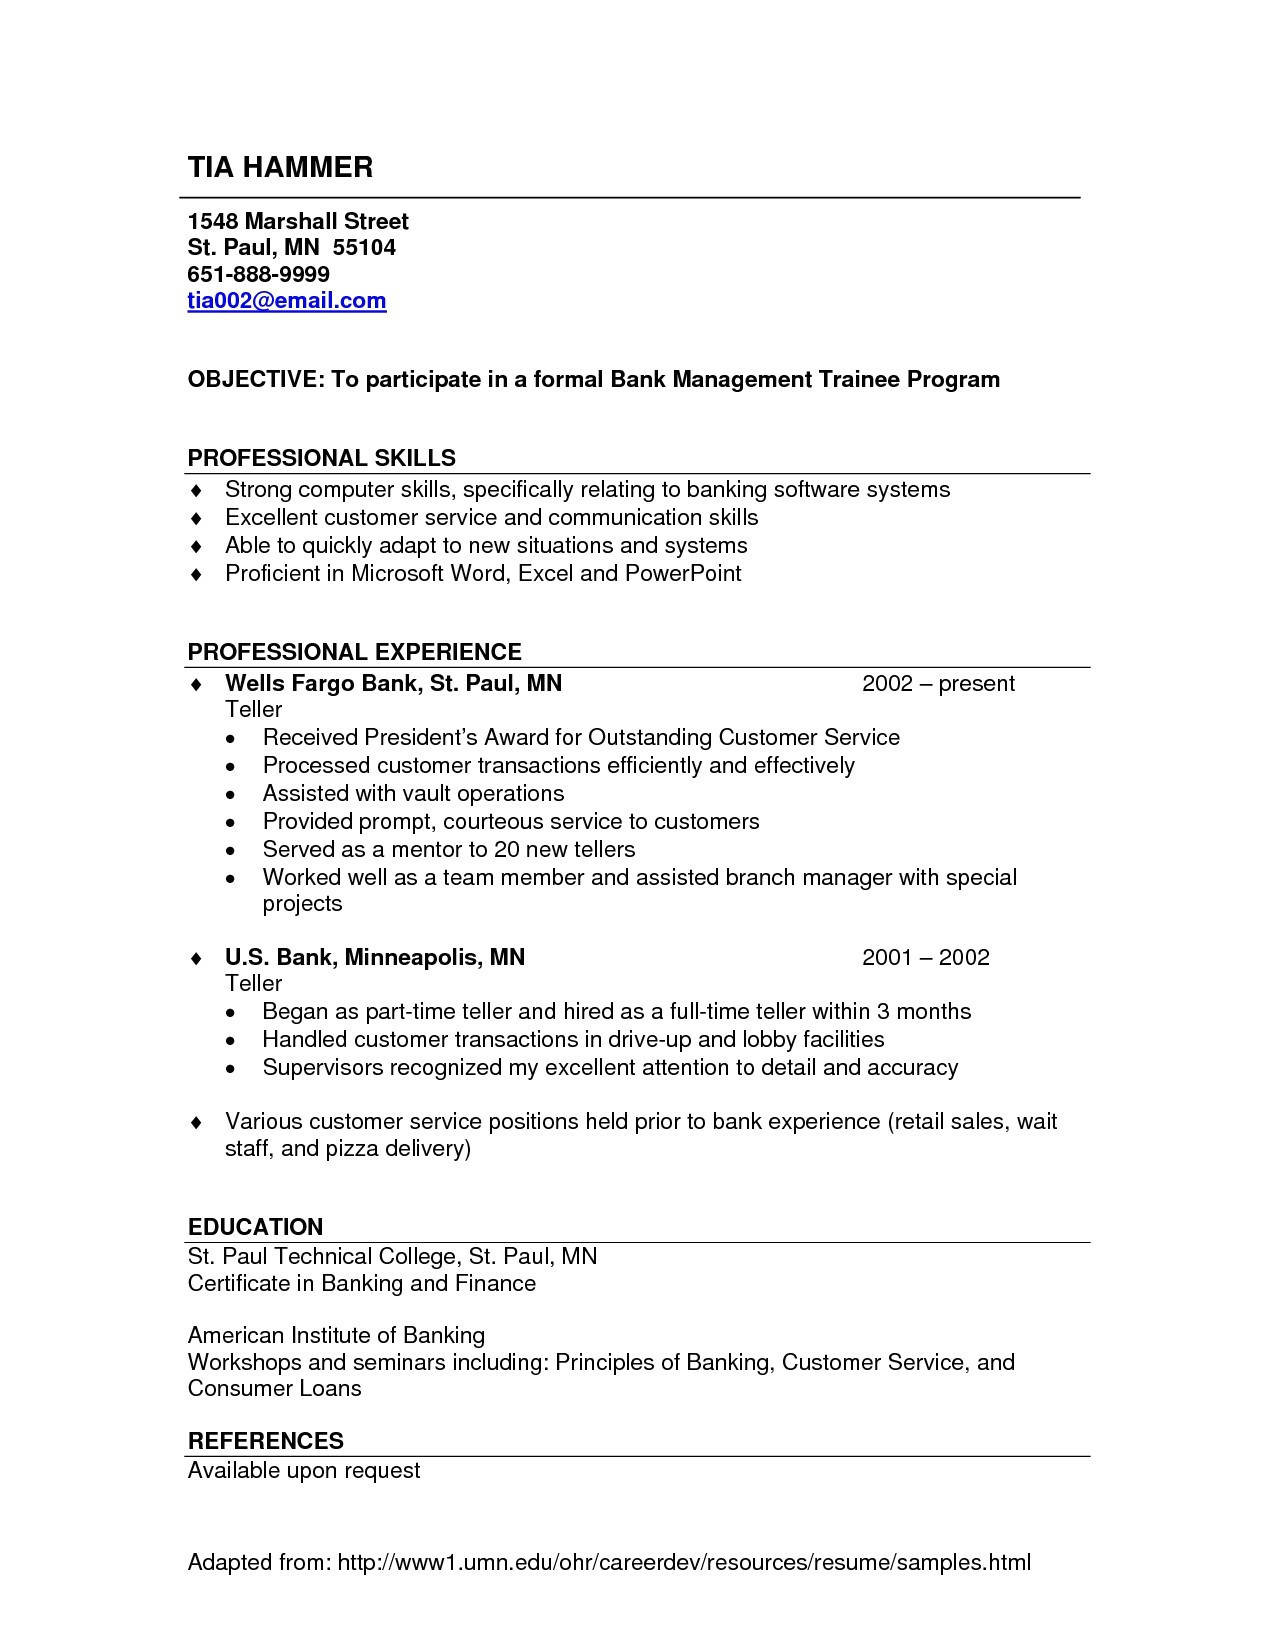 Resume Ideas for Skills - Apa Resume Template New Examples A Resume Fresh Resume Examples 0d